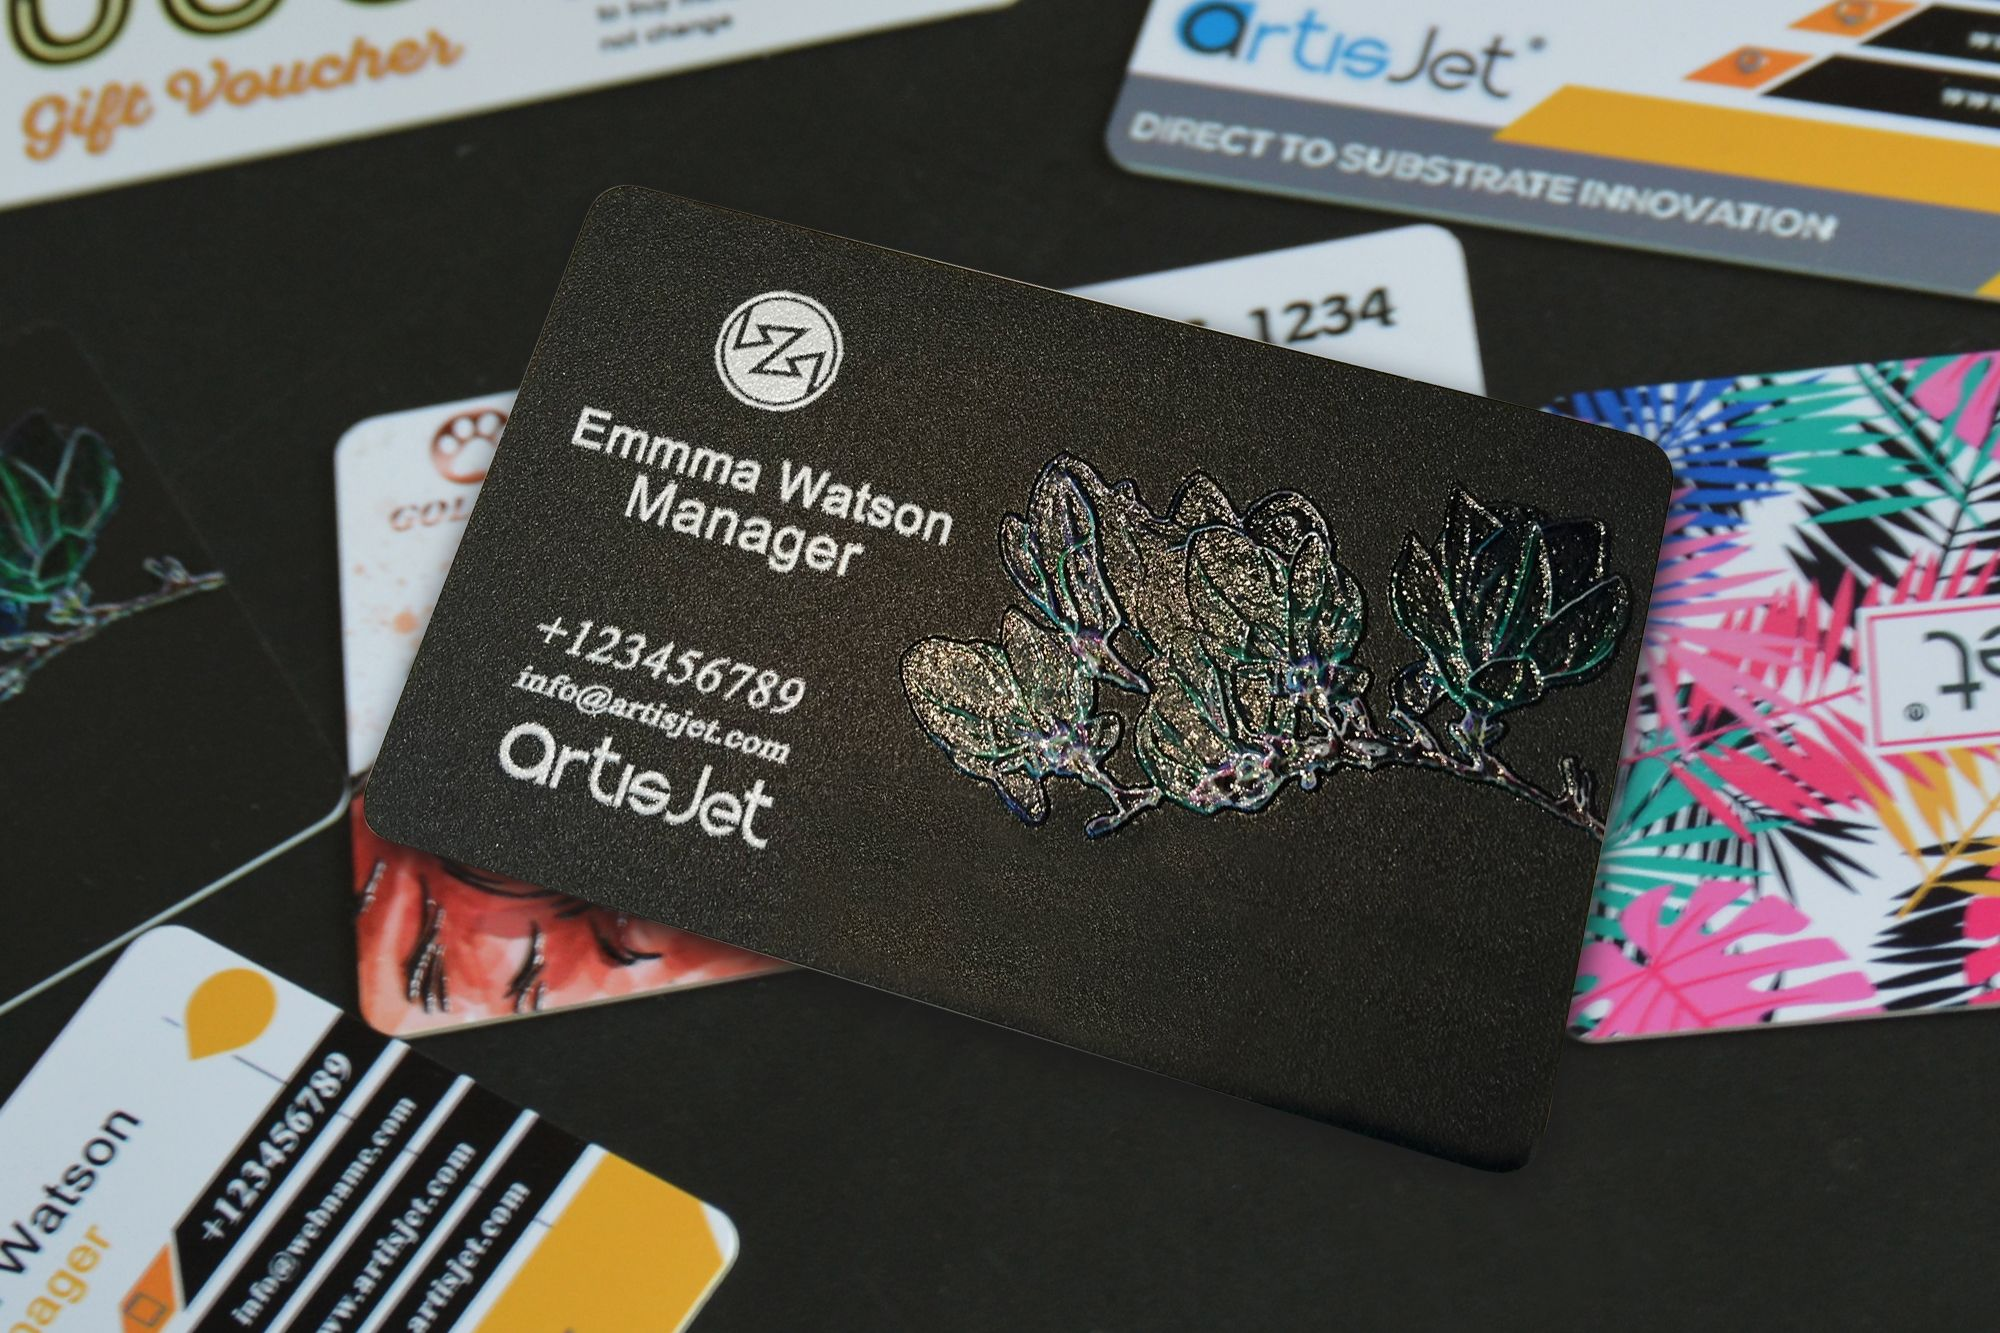 3d embossed effect on business cards grafima 2017 booth 4010 3d embossed effect on business cards grafima 2017 booth 4010 belgrade fair reheart Image collections